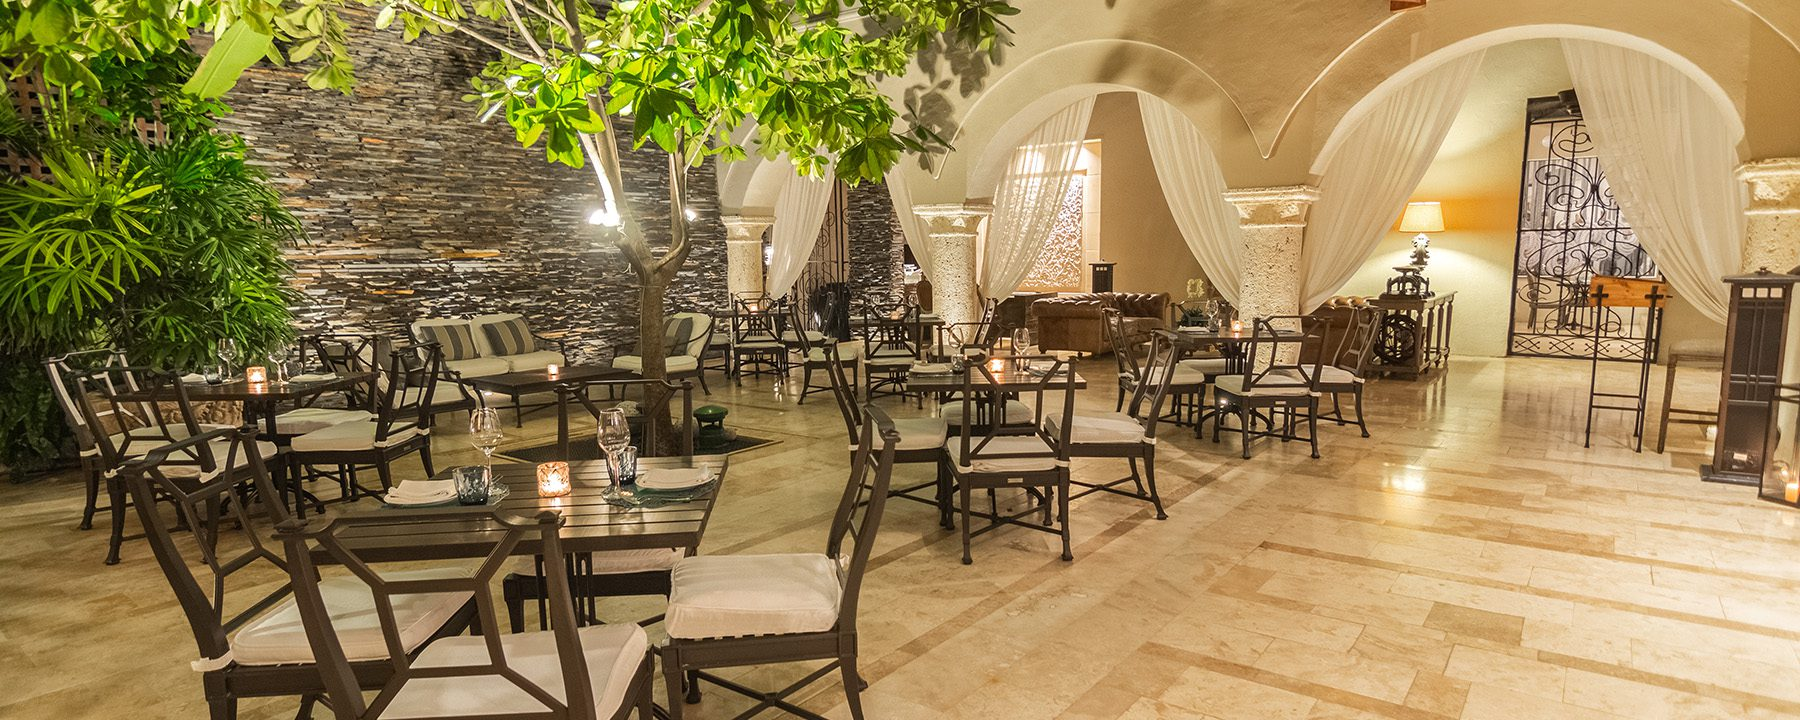 Bastion_Luxury_Hotel_Patio_3.1